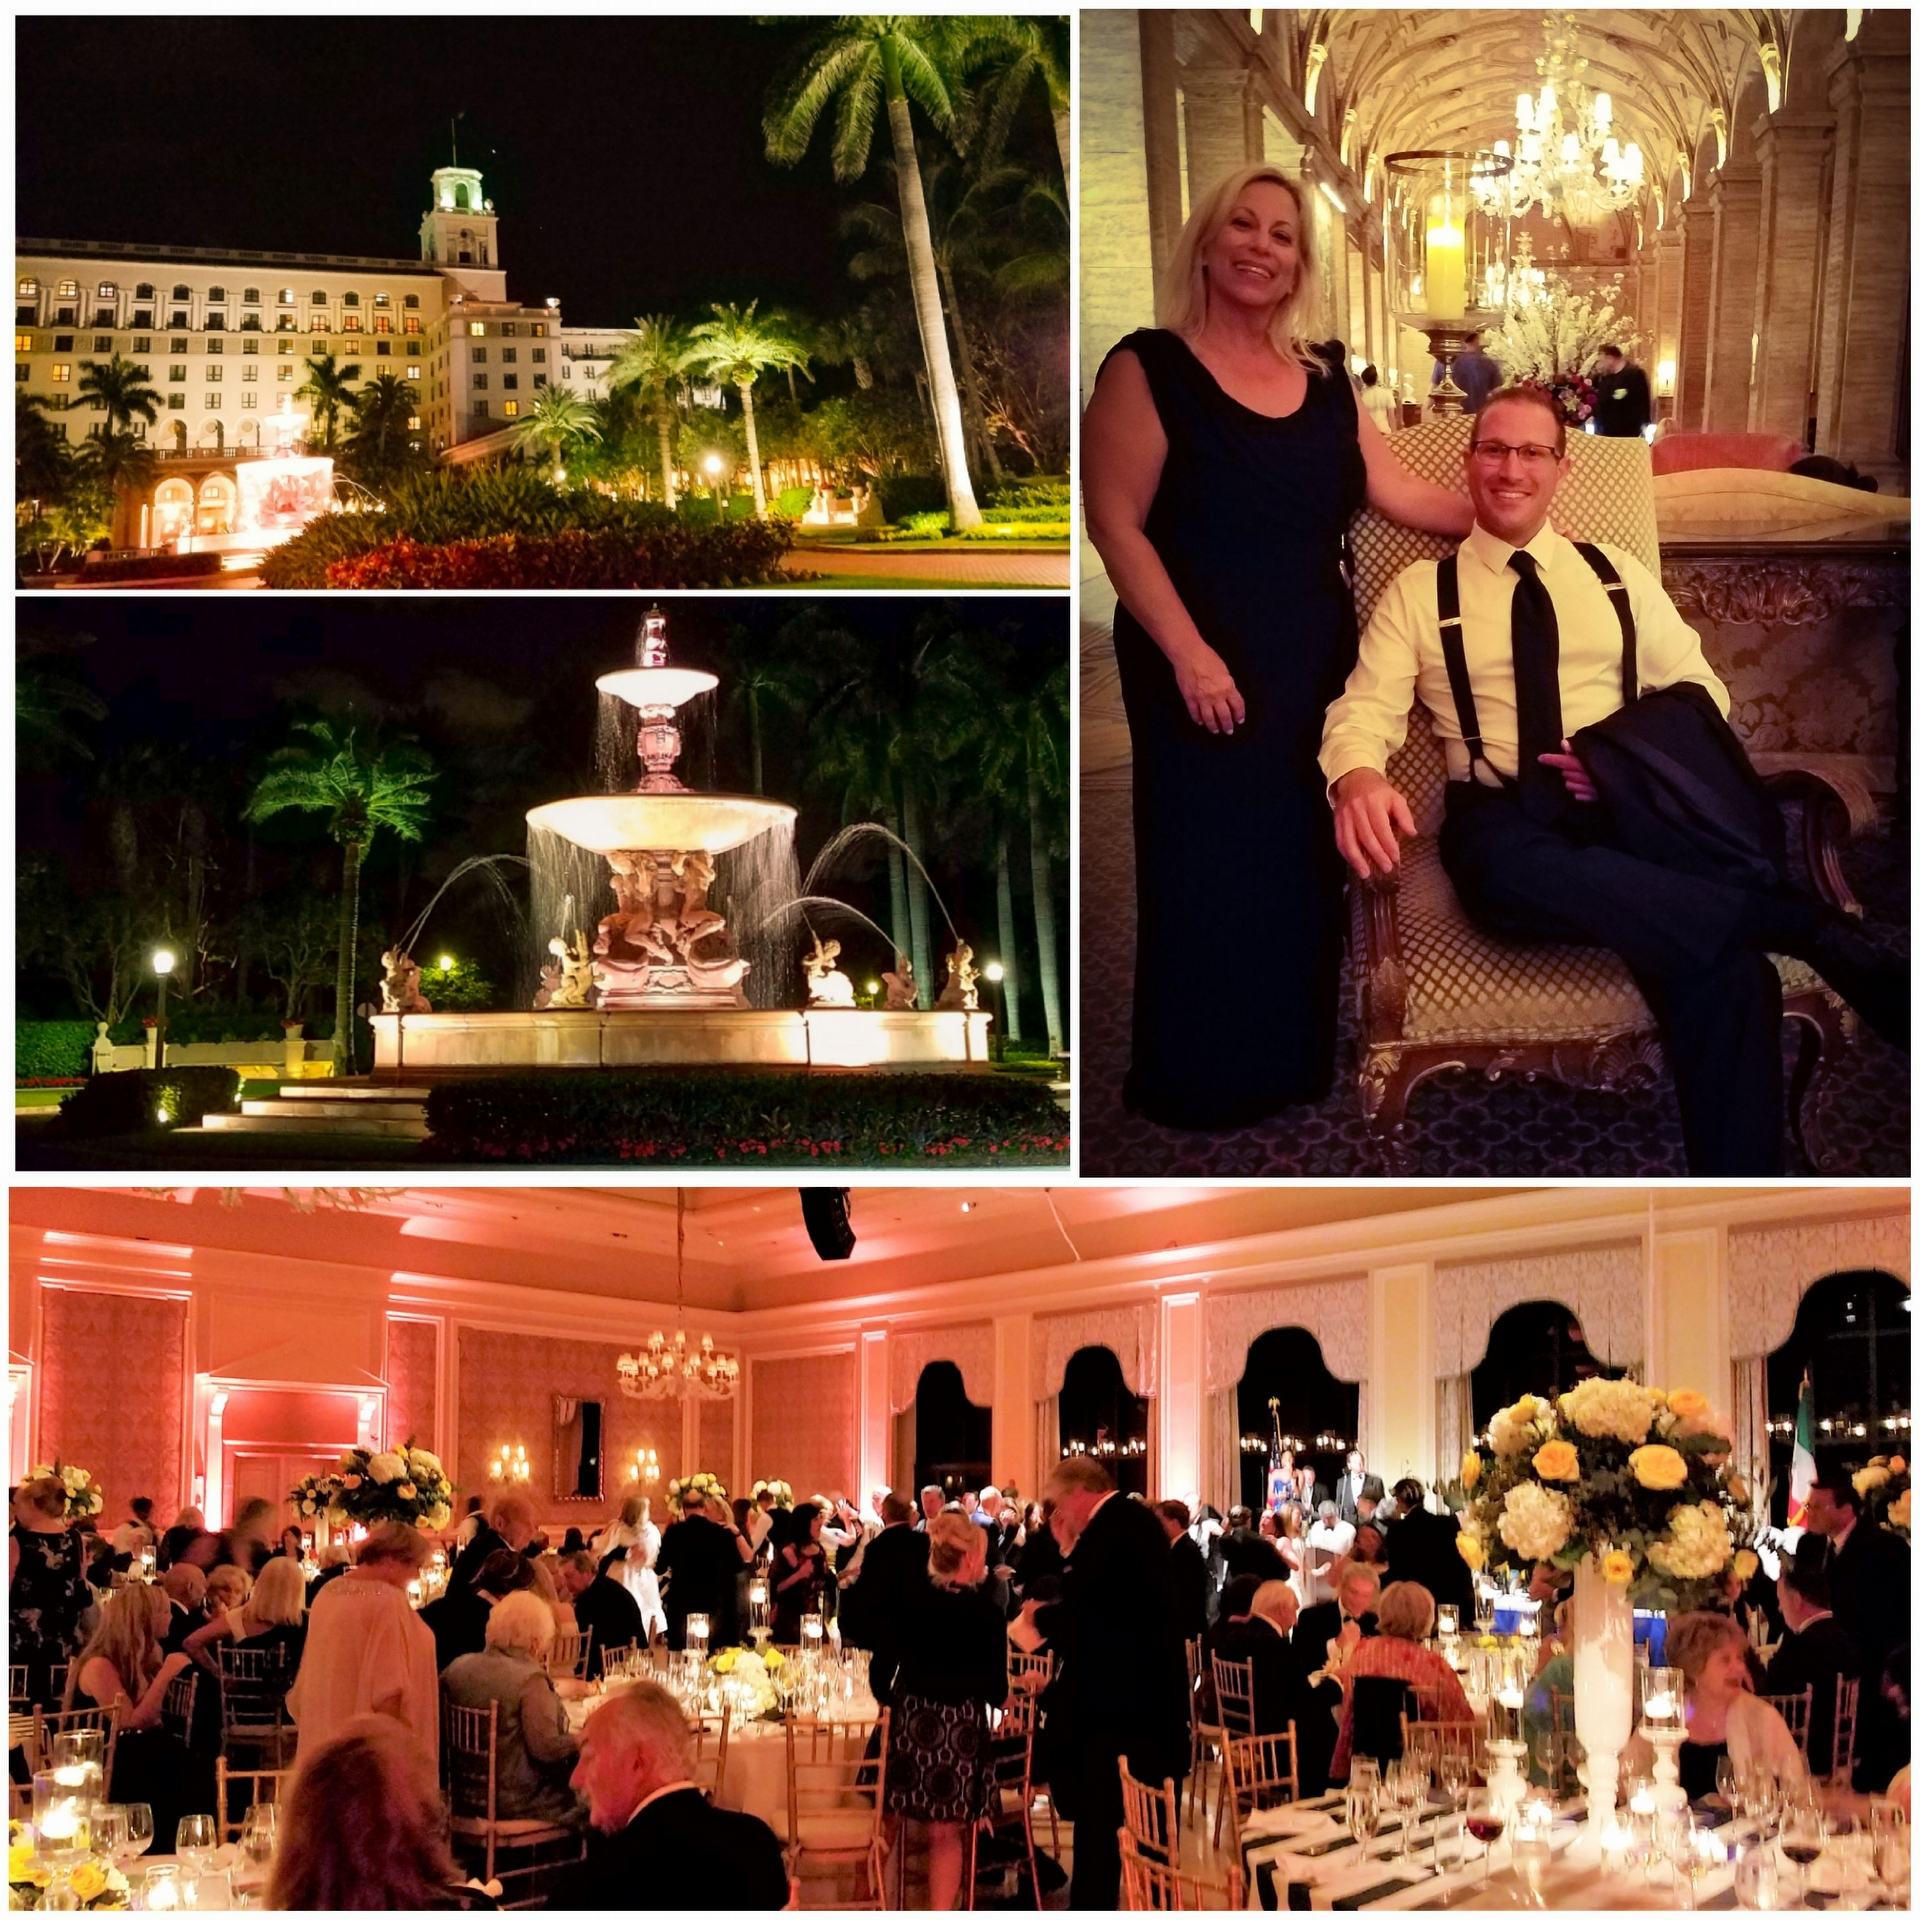 Palm Beach Gardens Events March 2017 Garden Ftempo